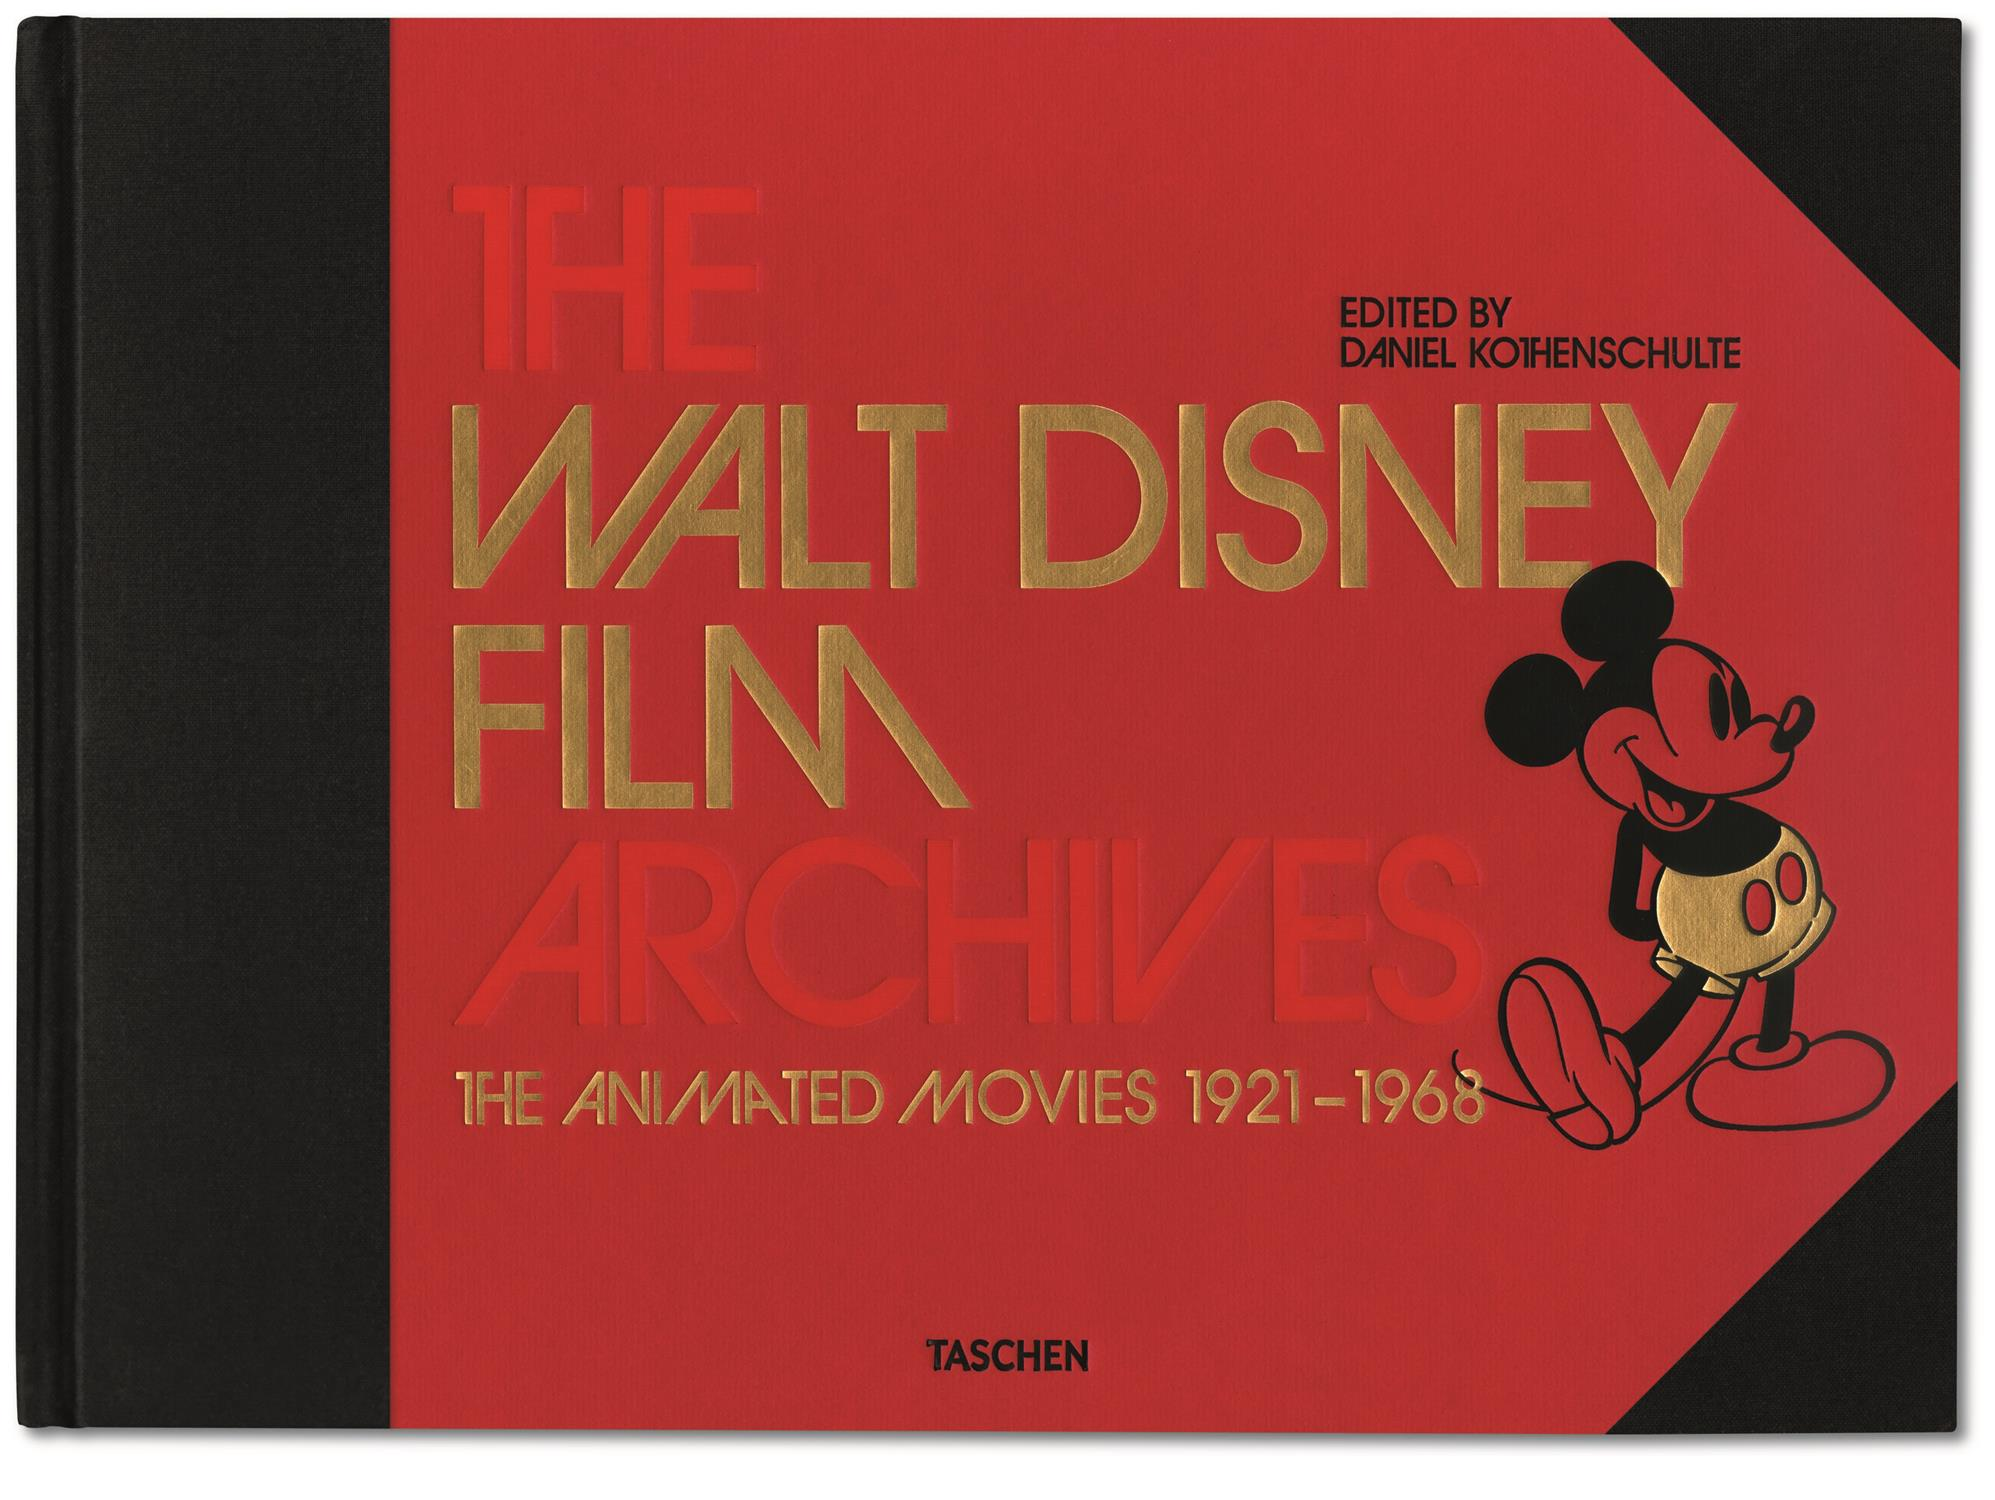 Walt Disney Archives. The Animated Movies 1921-1968